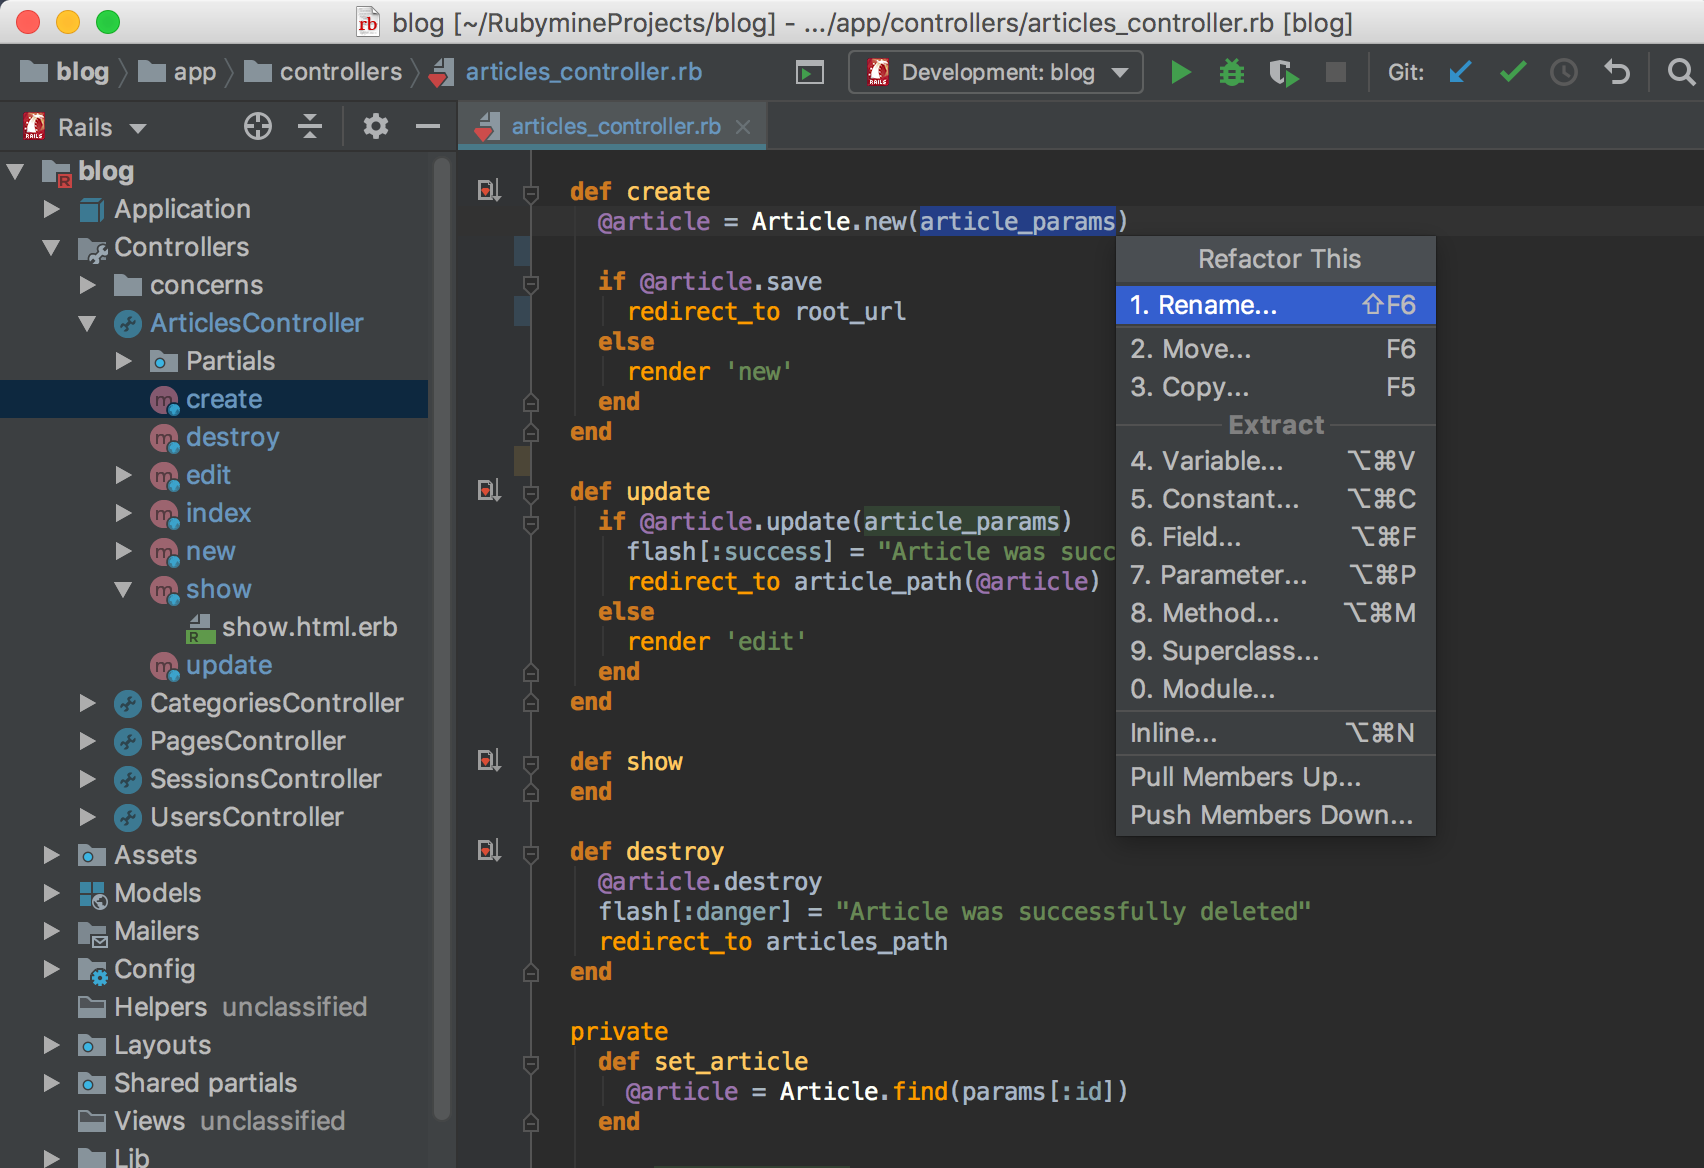 Jetbrains RubyMine latest version